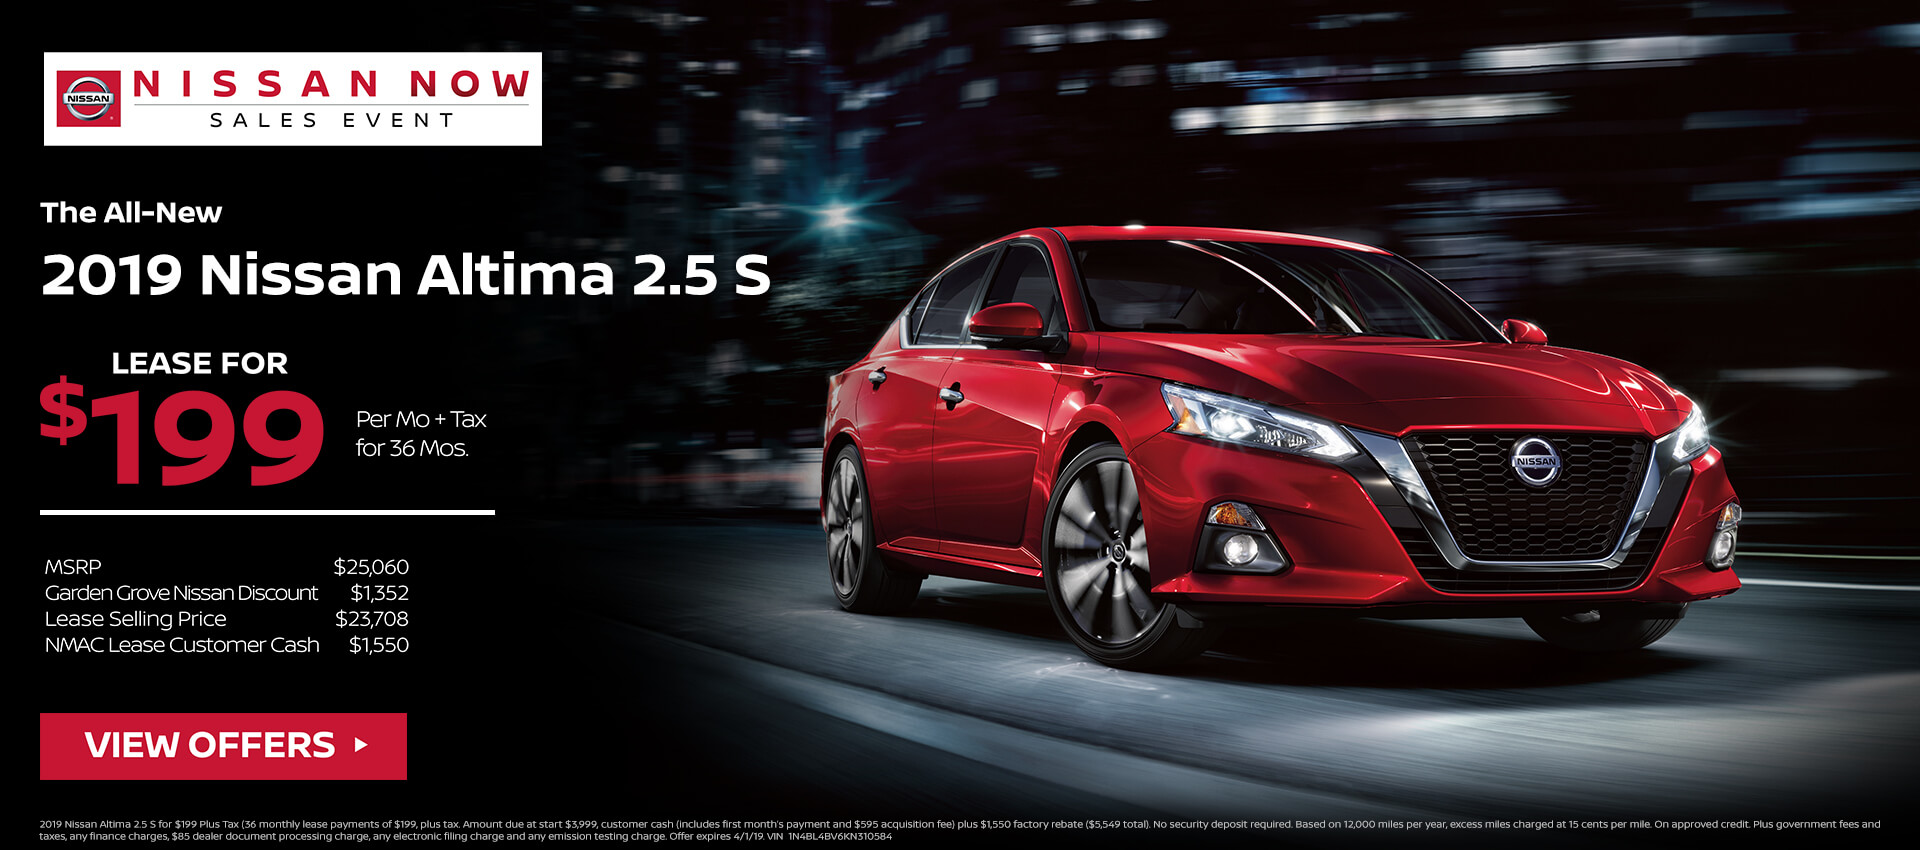 2019 Nissan Altima Offer